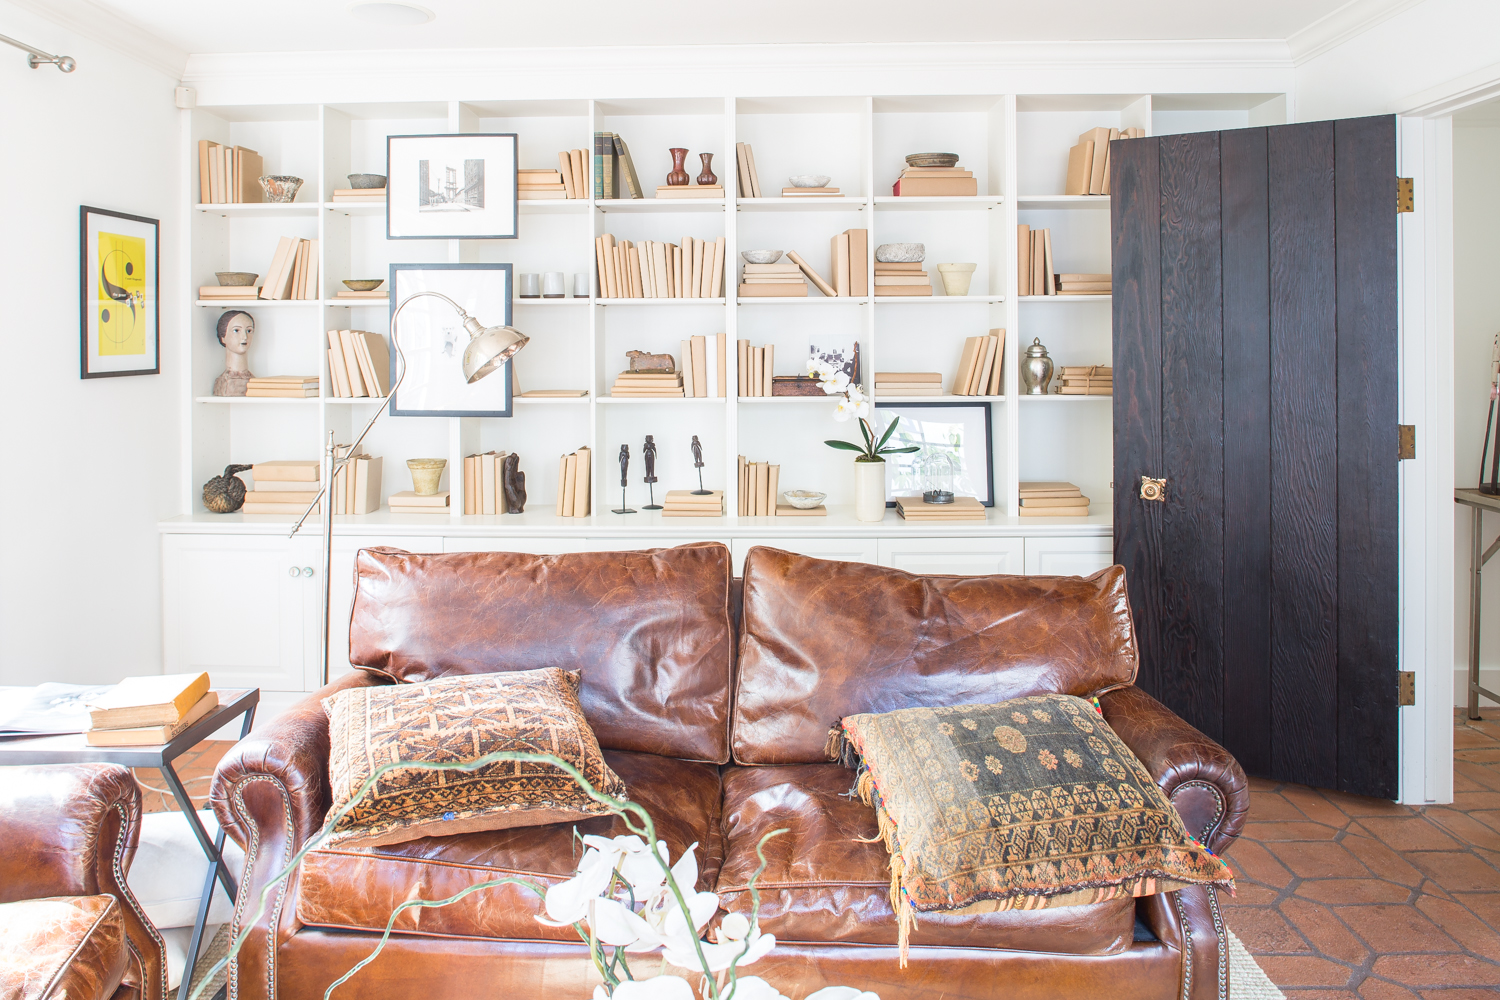 Home staging Meridith Baer feature in South Bay DIGS Magazine